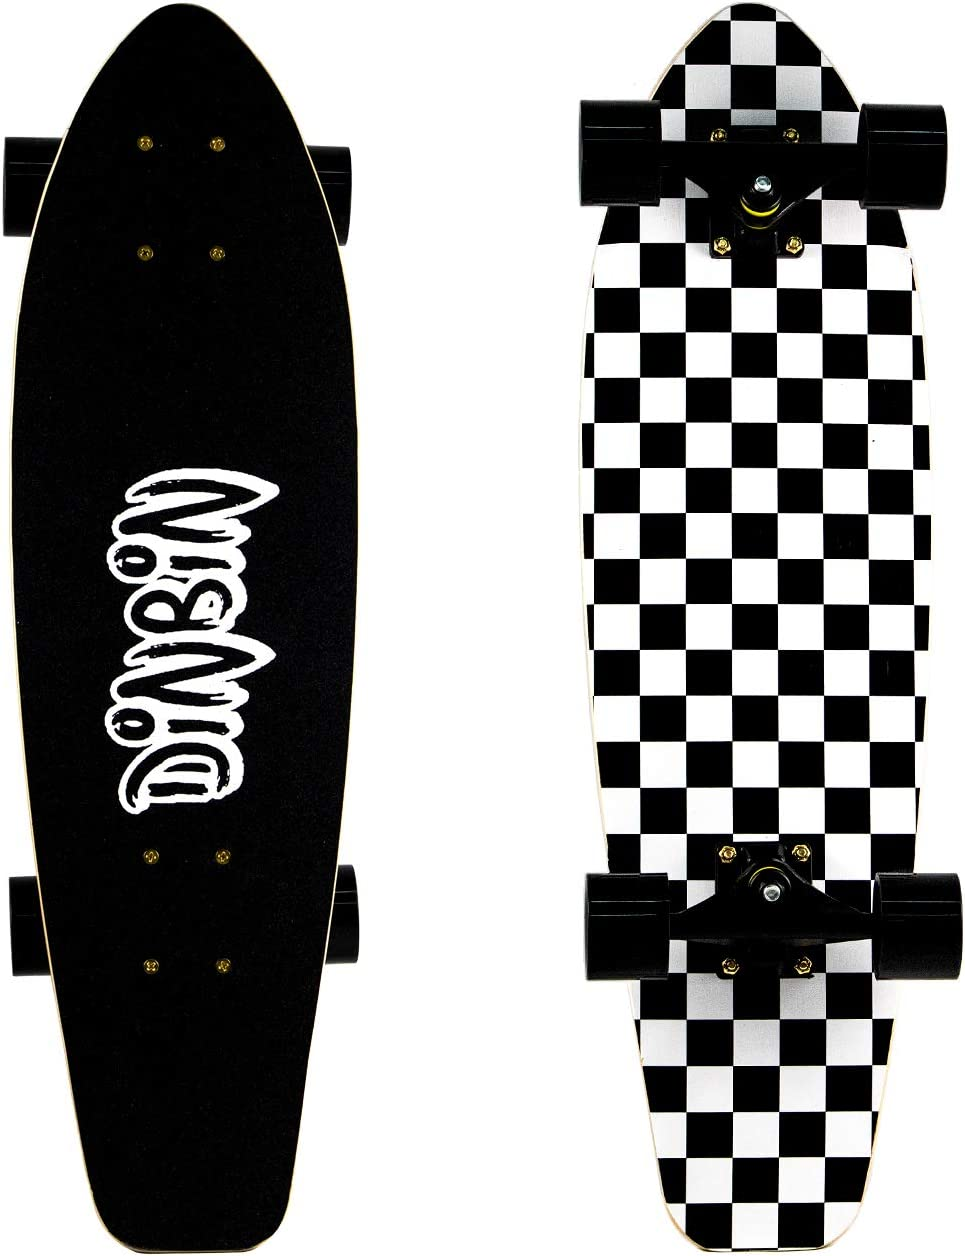 2021 spring and summer new DINBIN Cruiser Skateboard Complete Highly Layer Canadian 7 Maple trust